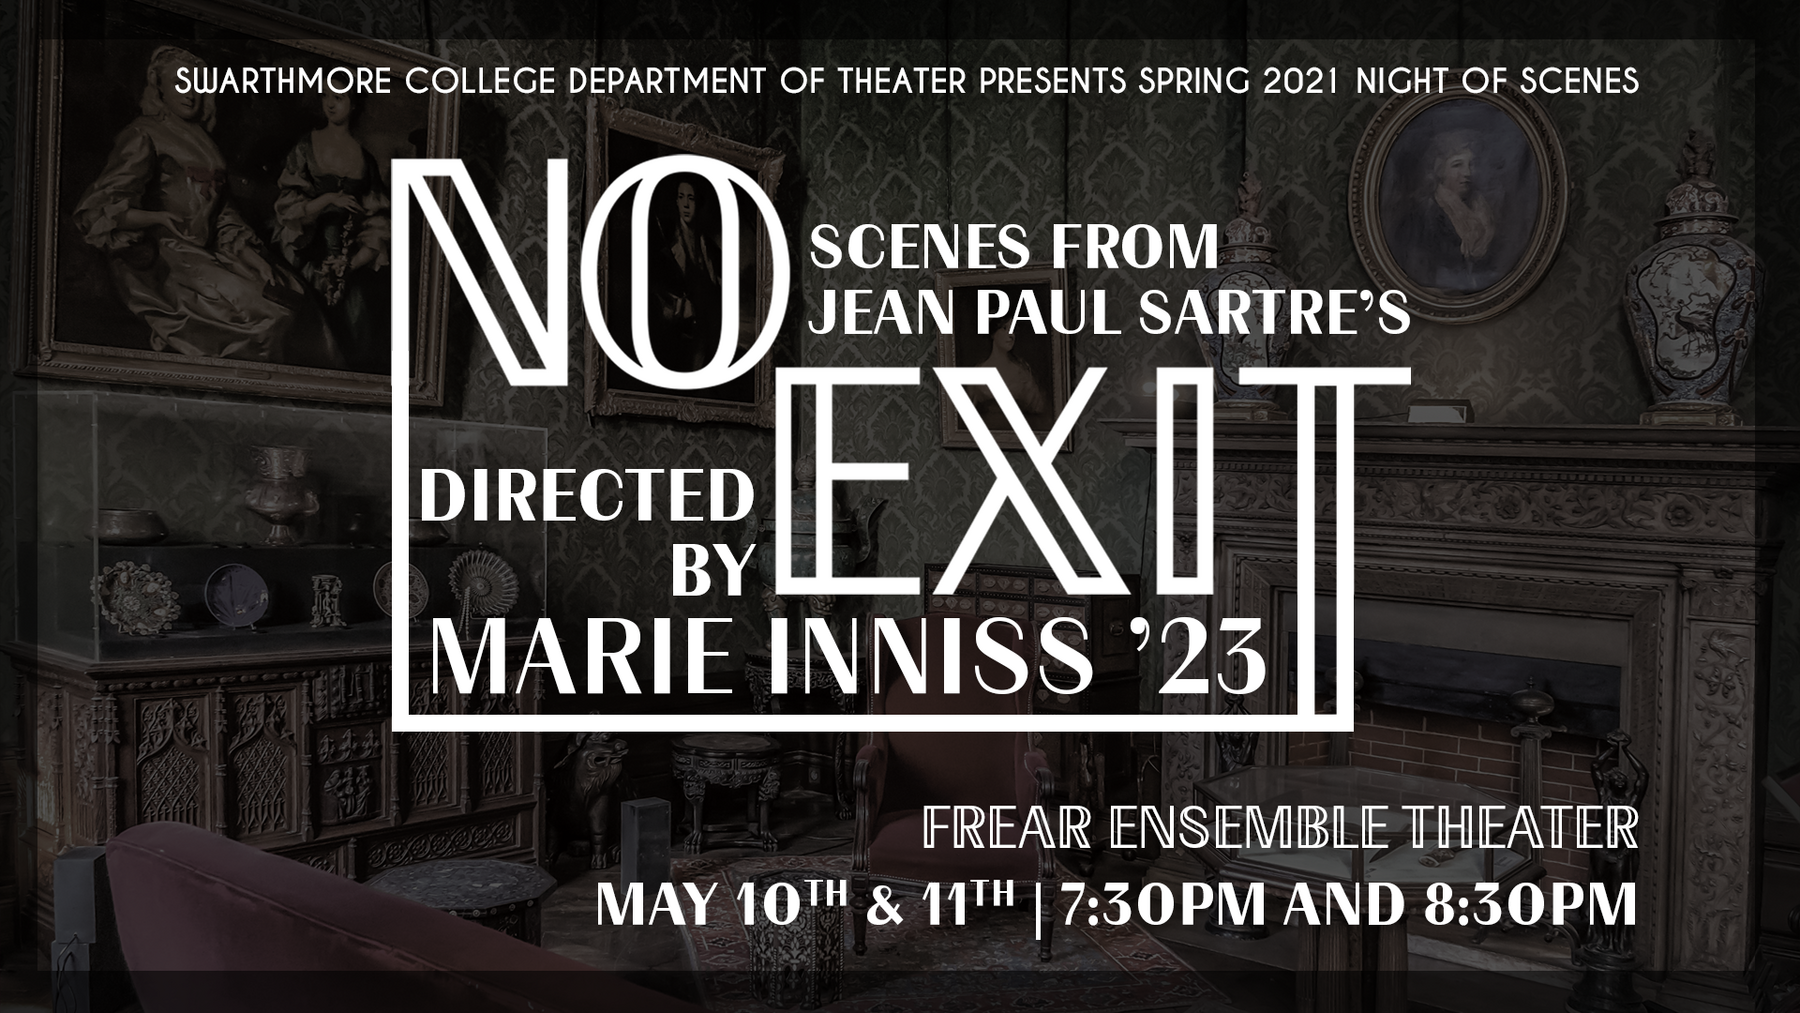 """""""Swarthmore College Department of Theater Presents Spring 2021 Night of Scenes; Scenes from Jean Paul Sartre's NO EXIT Directed by Marie Inniss '23; Frear Ensemble Theater; May 10th & 11th, 7:30pm and 8:30pm"""""""